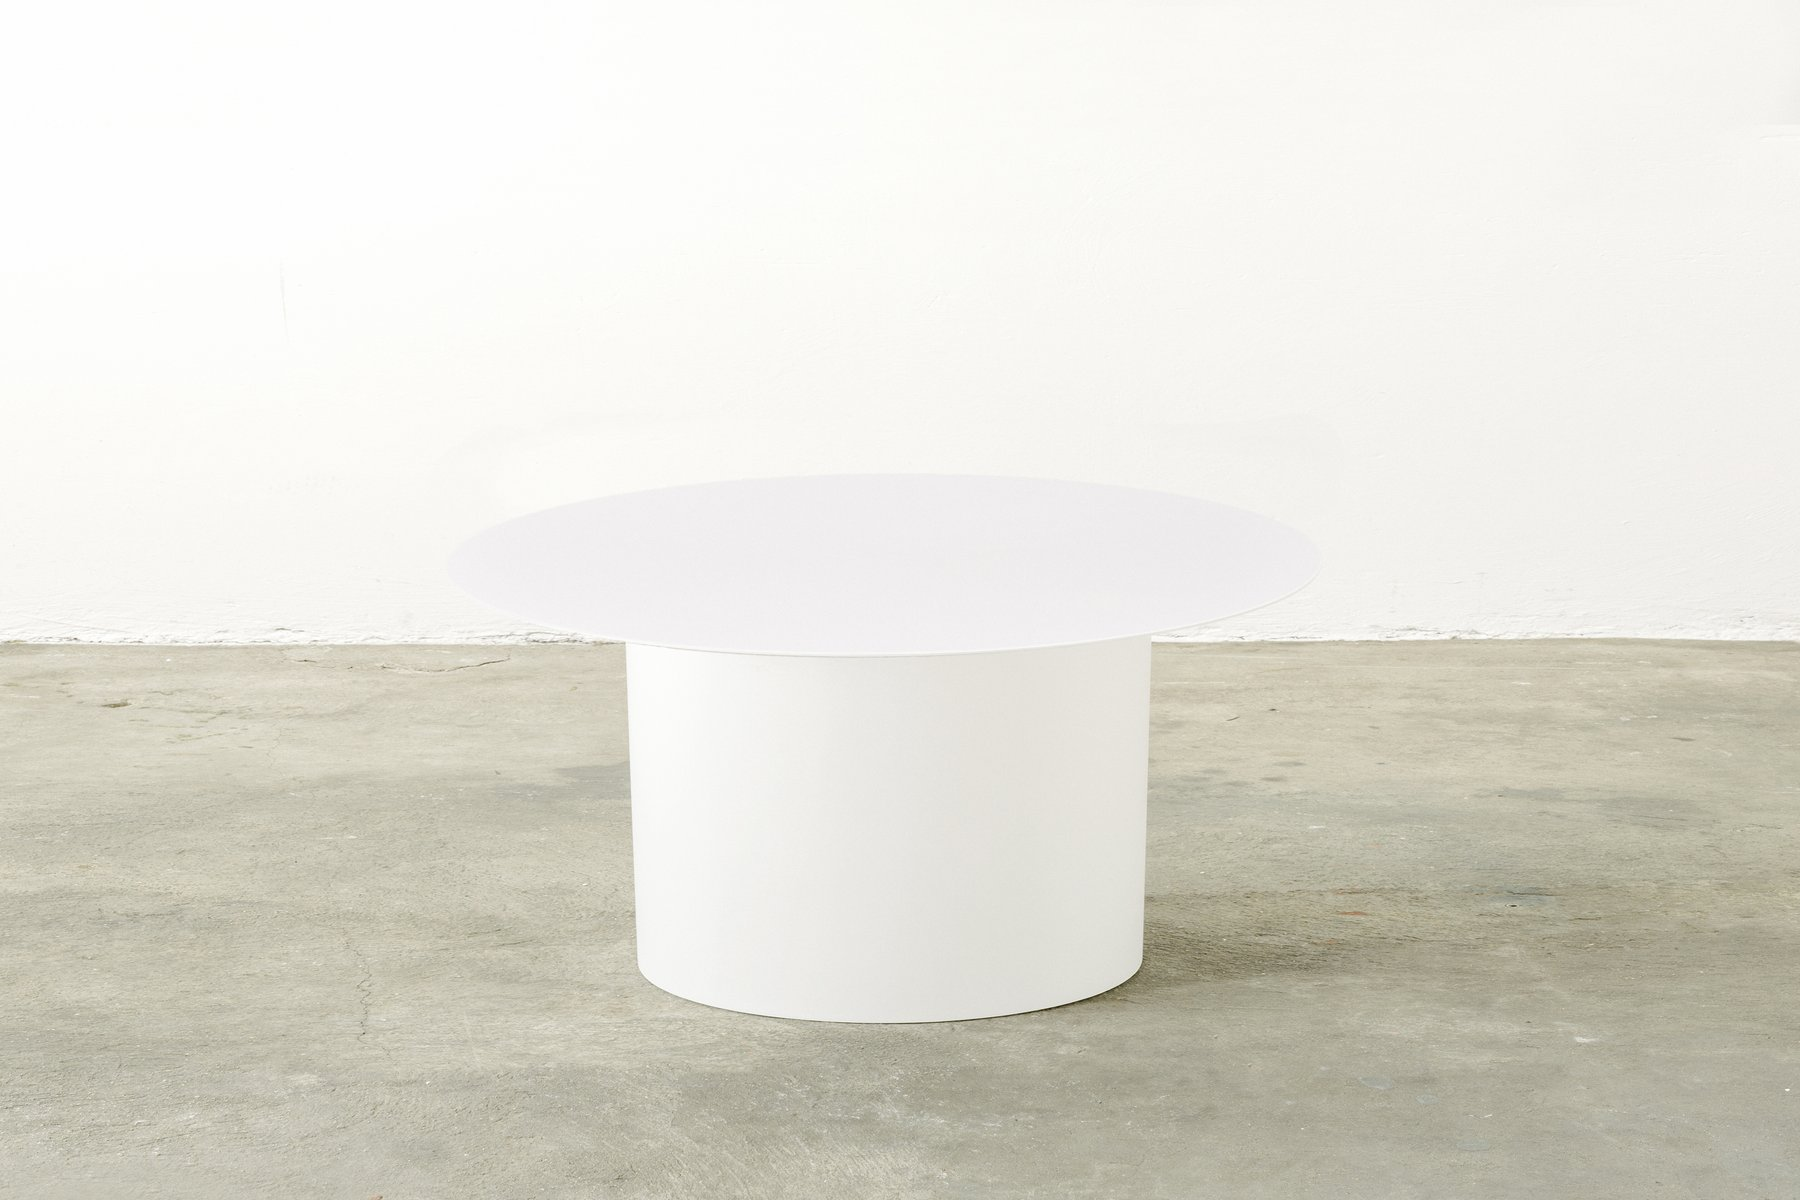 Chiodo na6 tisch von design studio associato for marco for Tisch eins design studio